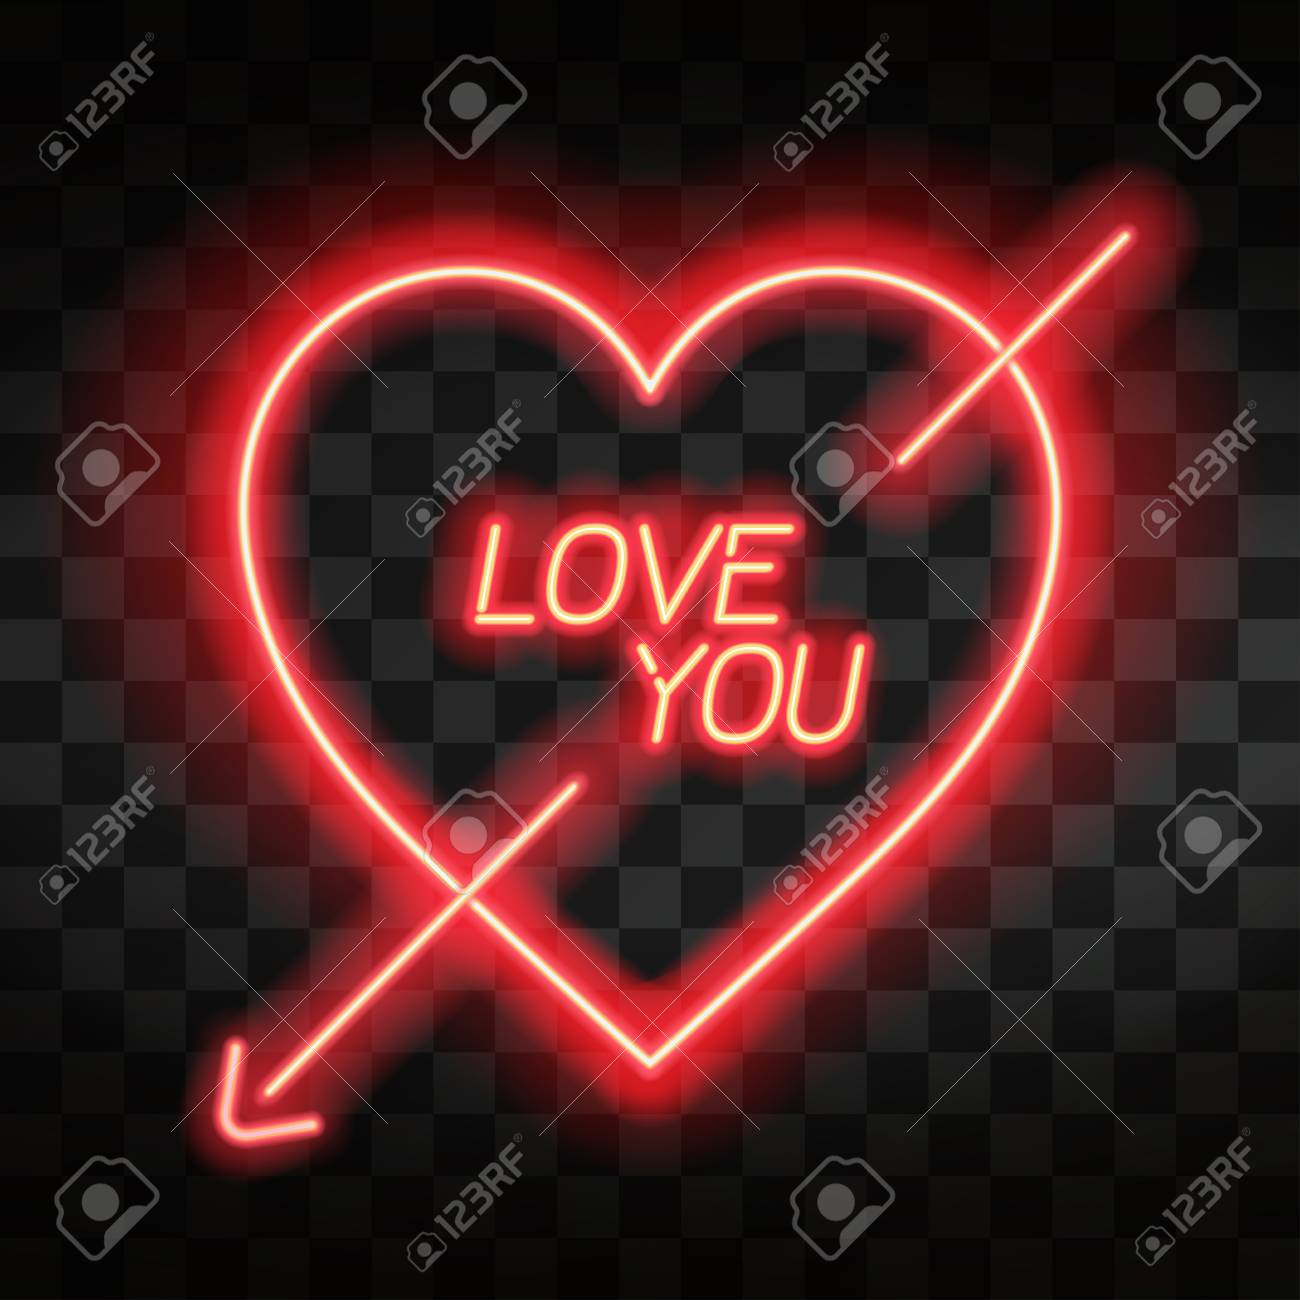 love you bright neon heart heart sign with cupid arrow on dark